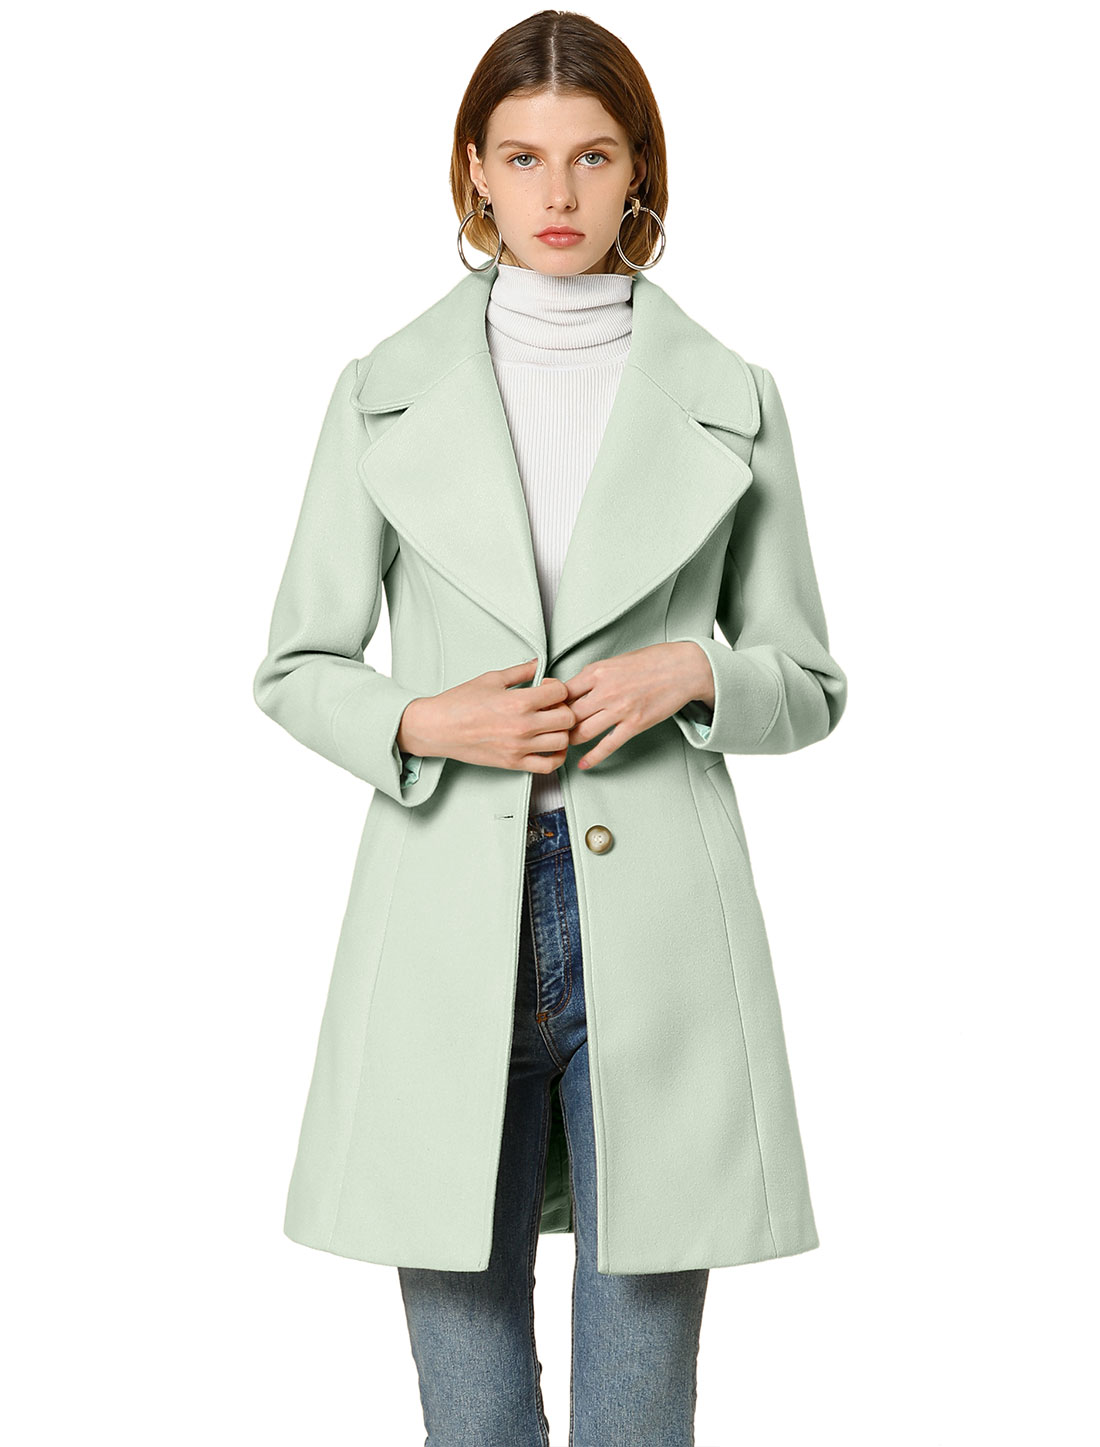 Allegra K Women's Elegant Notched Lapel Button Winter Long Trench Coat Green XL